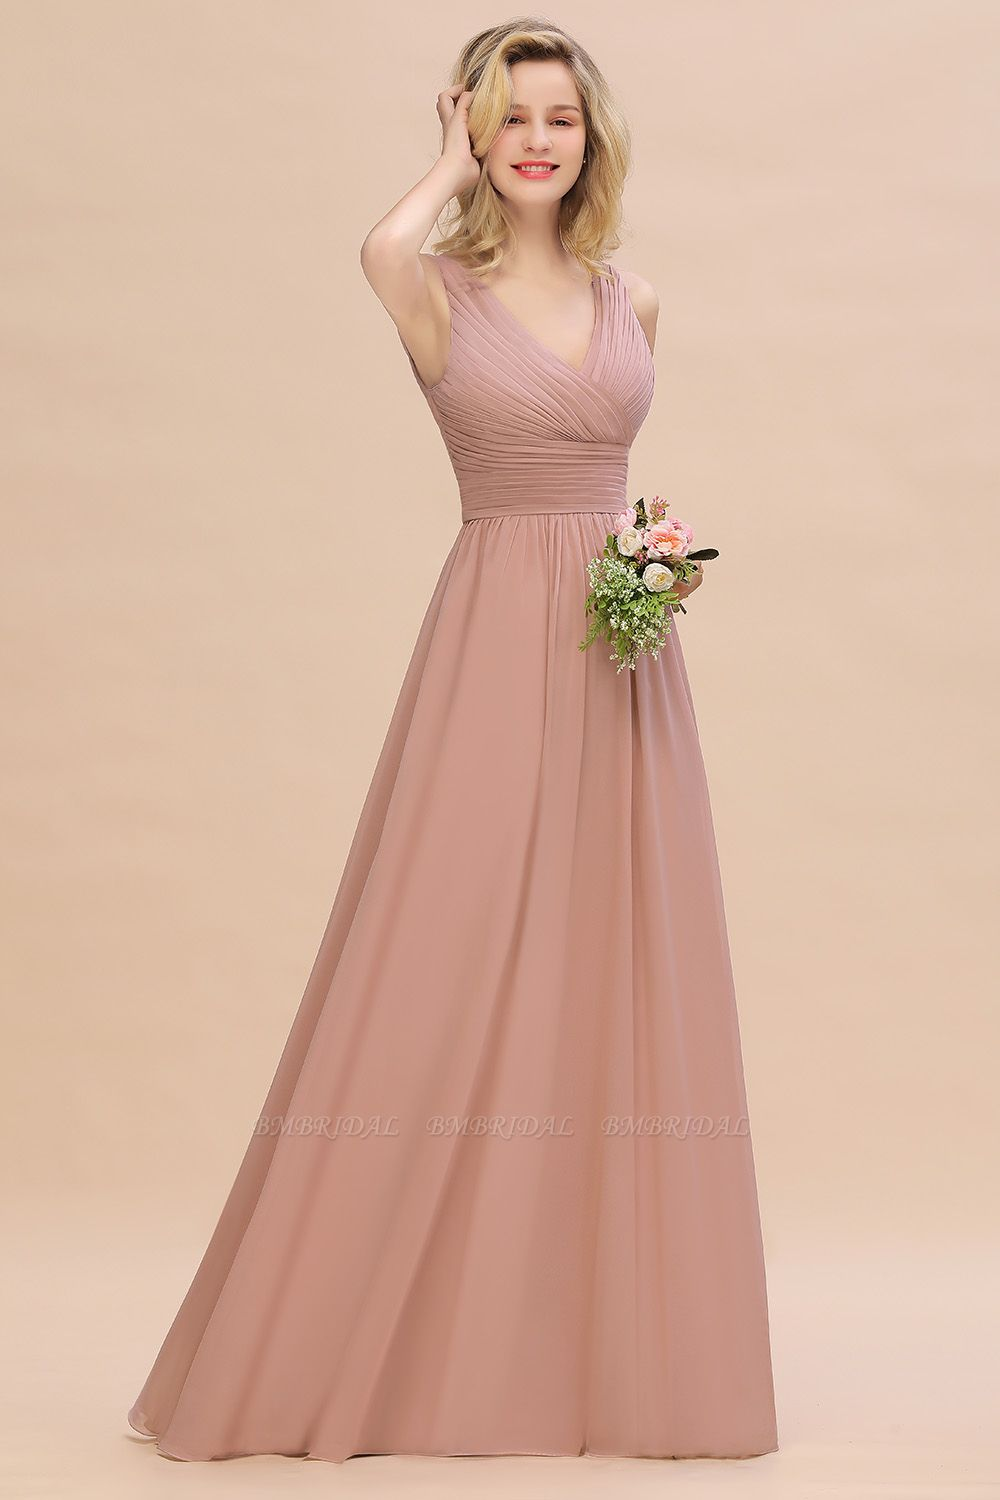 Chiffon Has Become The Most Popular Choice For Bridesmaid Dresses